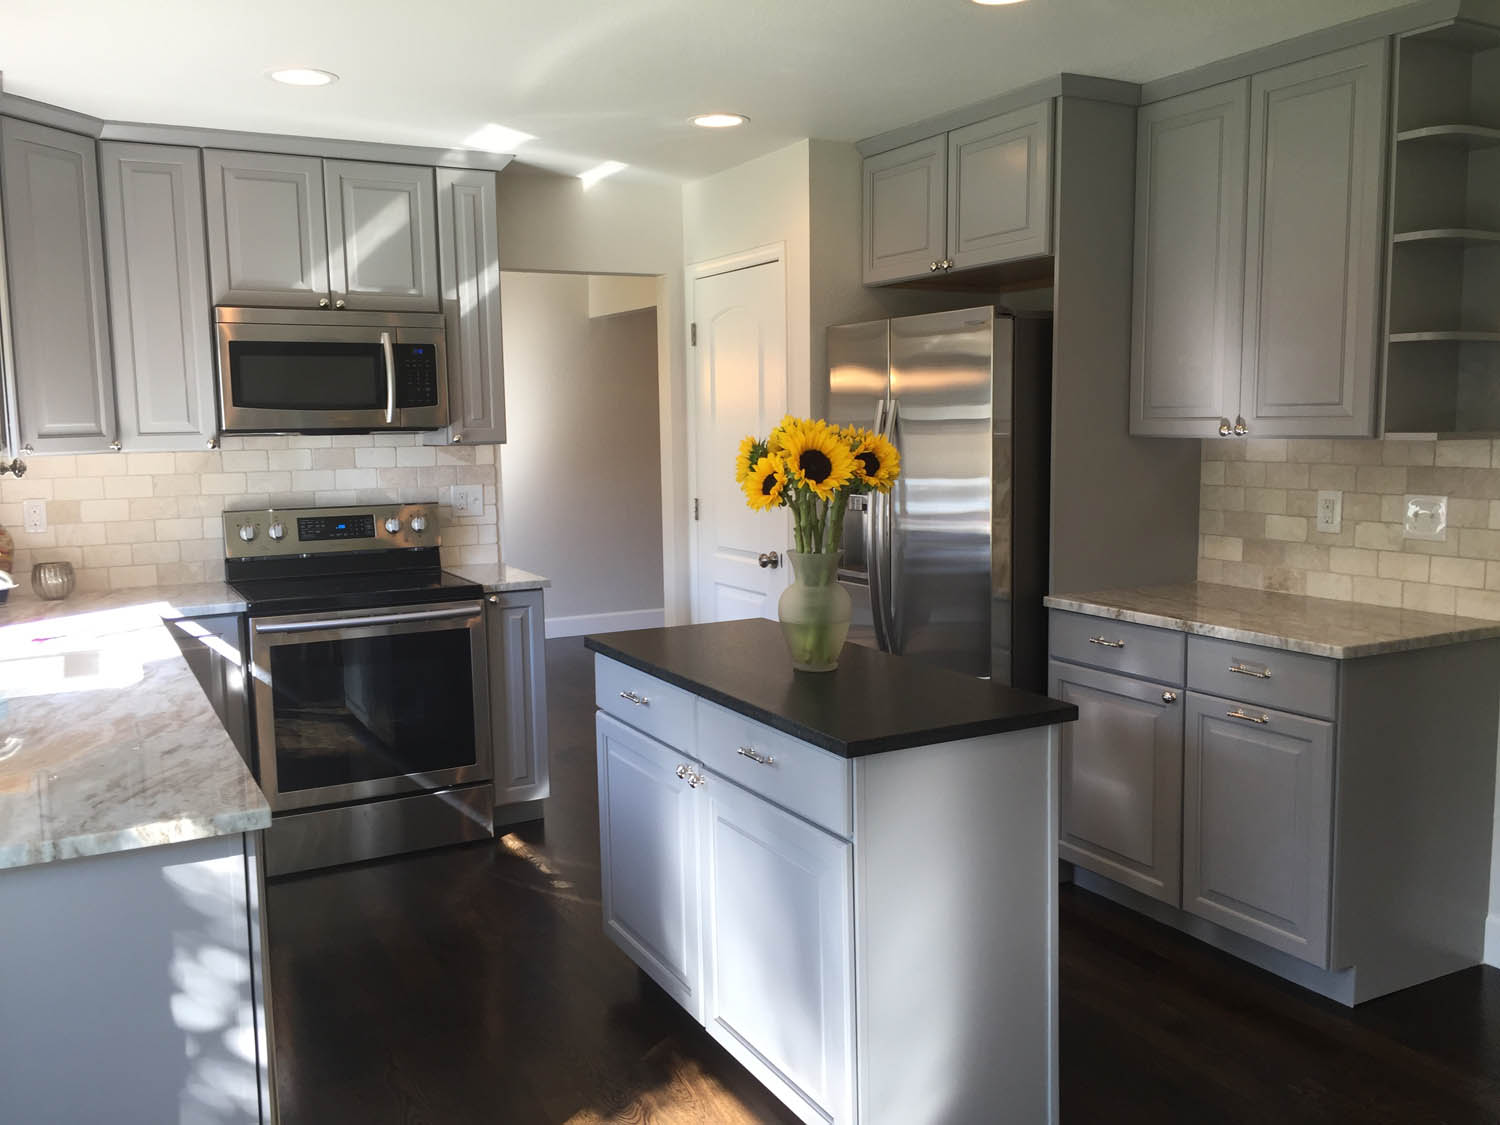 New cabinets give a light, bright appeal to the dark kitchen